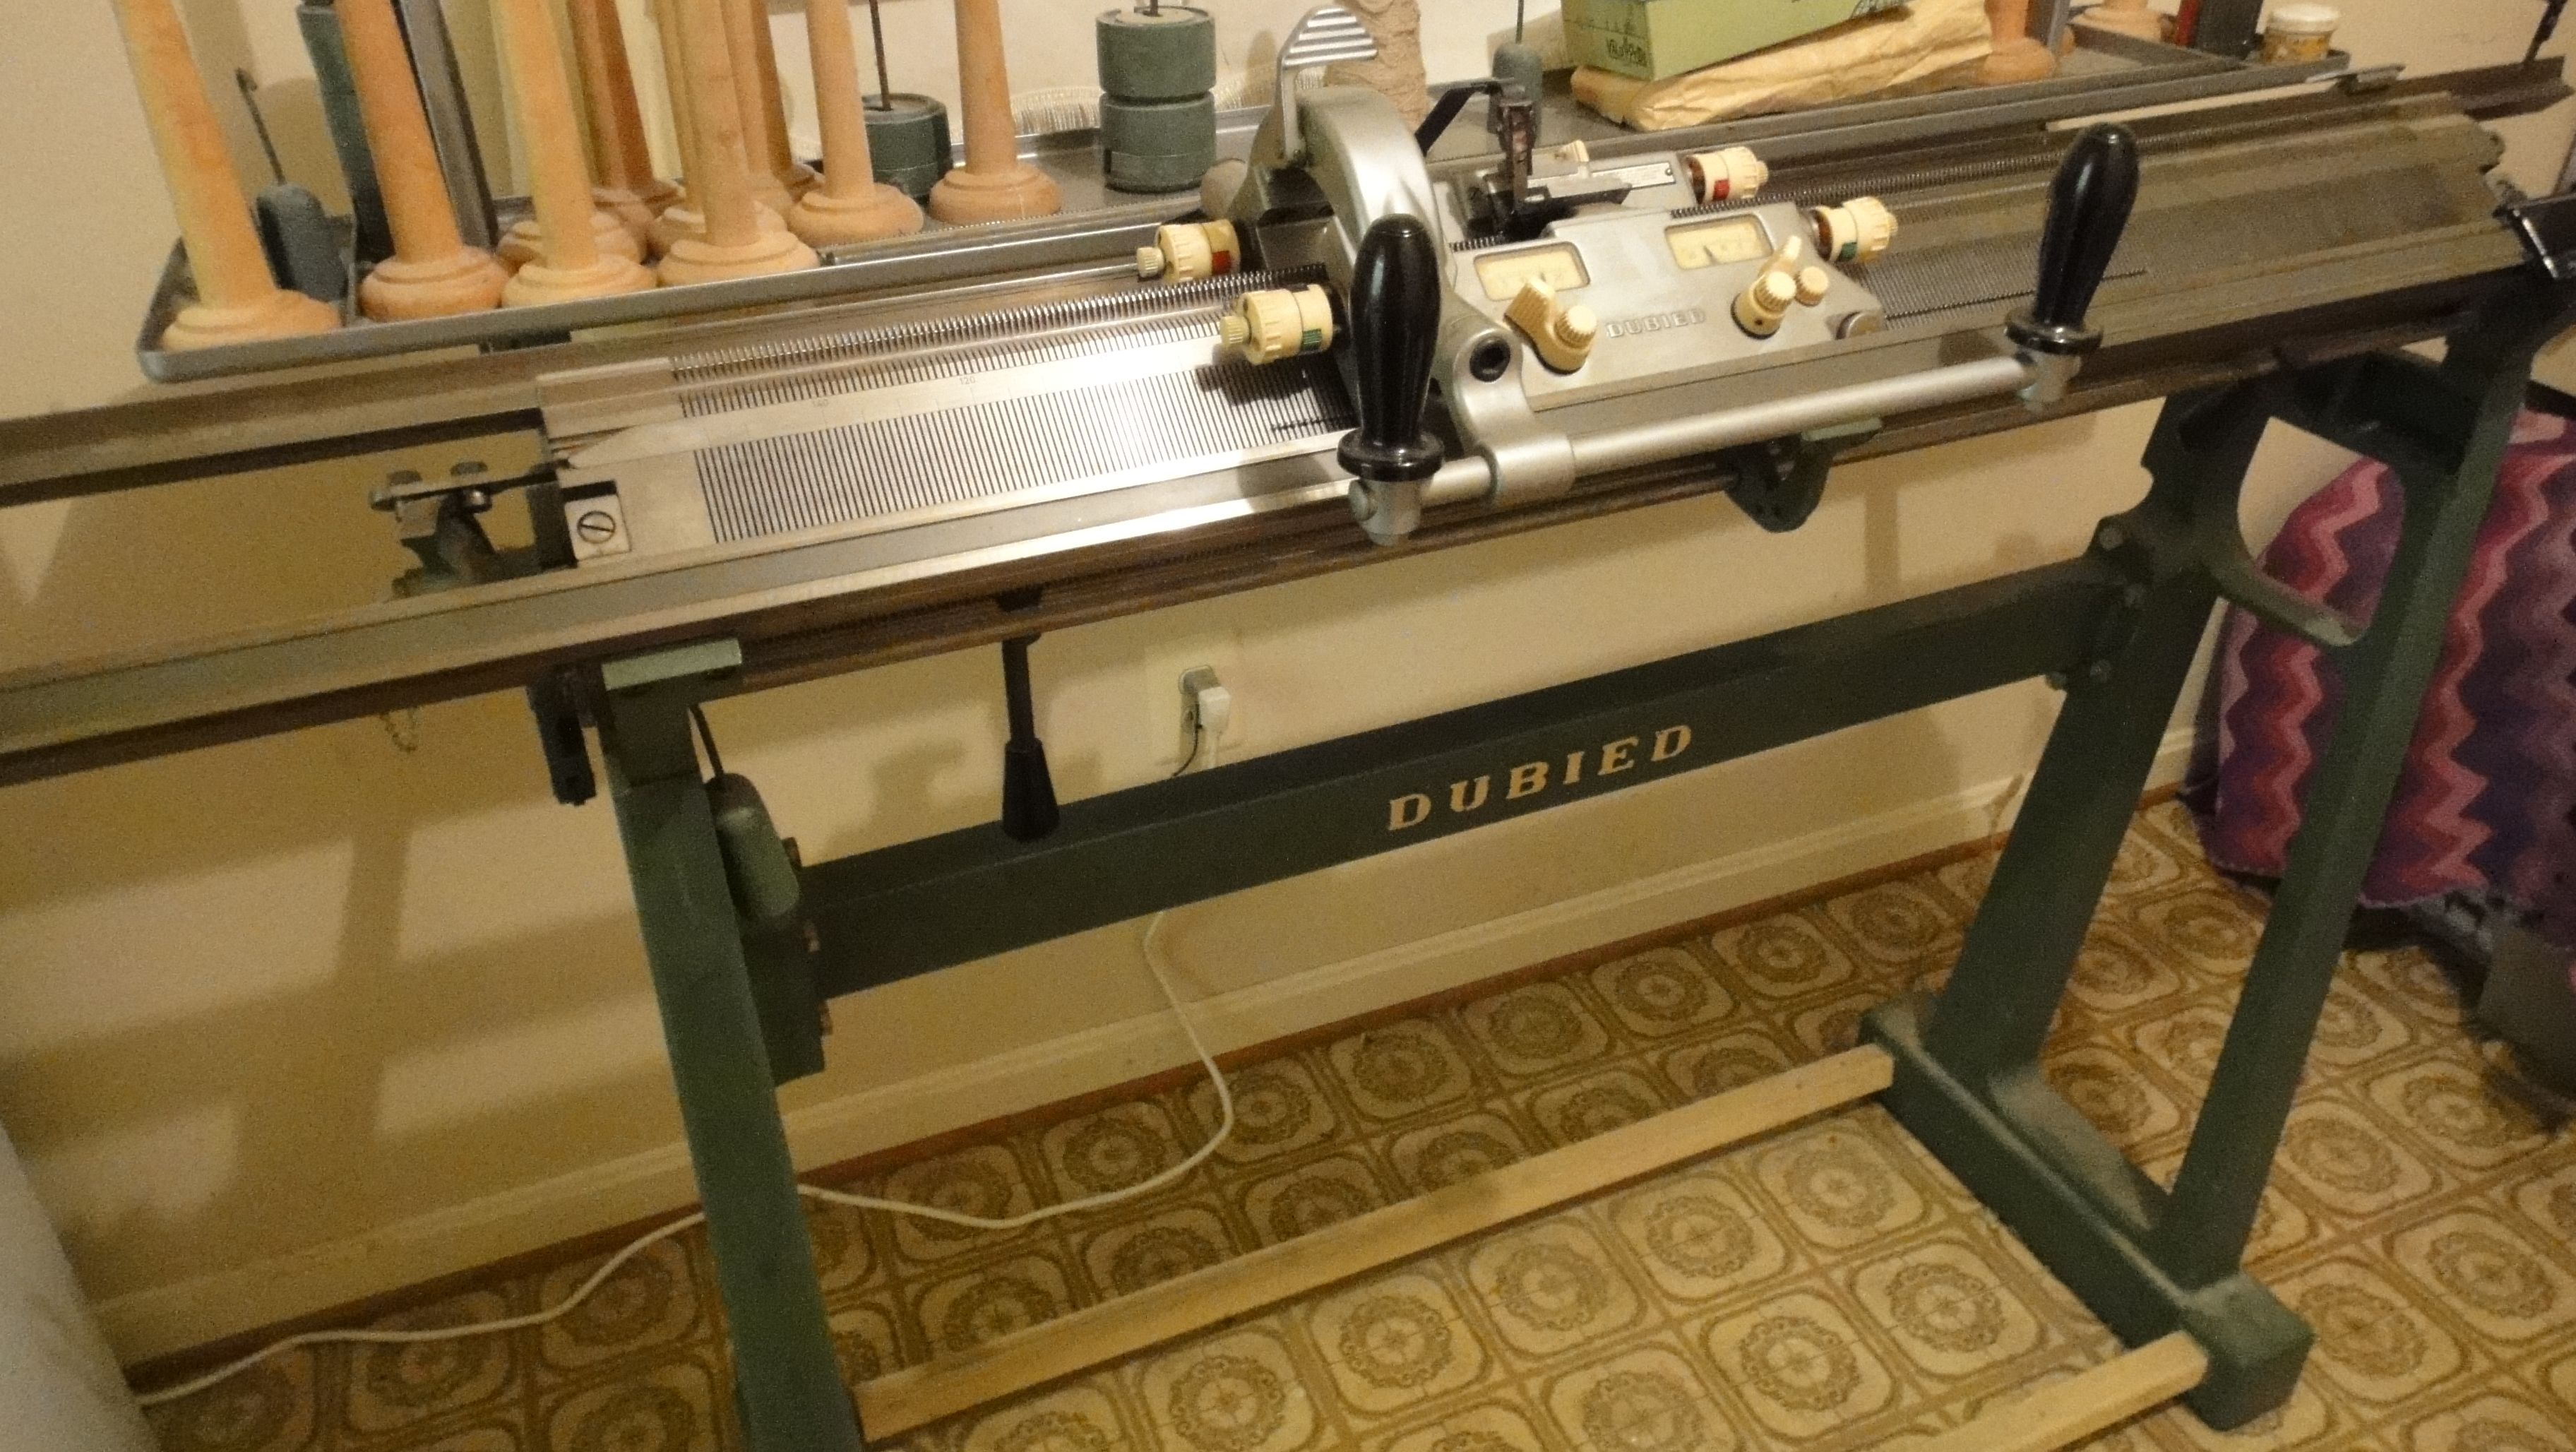 Second Hand Used N 1 Dubied N2 8g Ref16047 Hand Knitting Machine